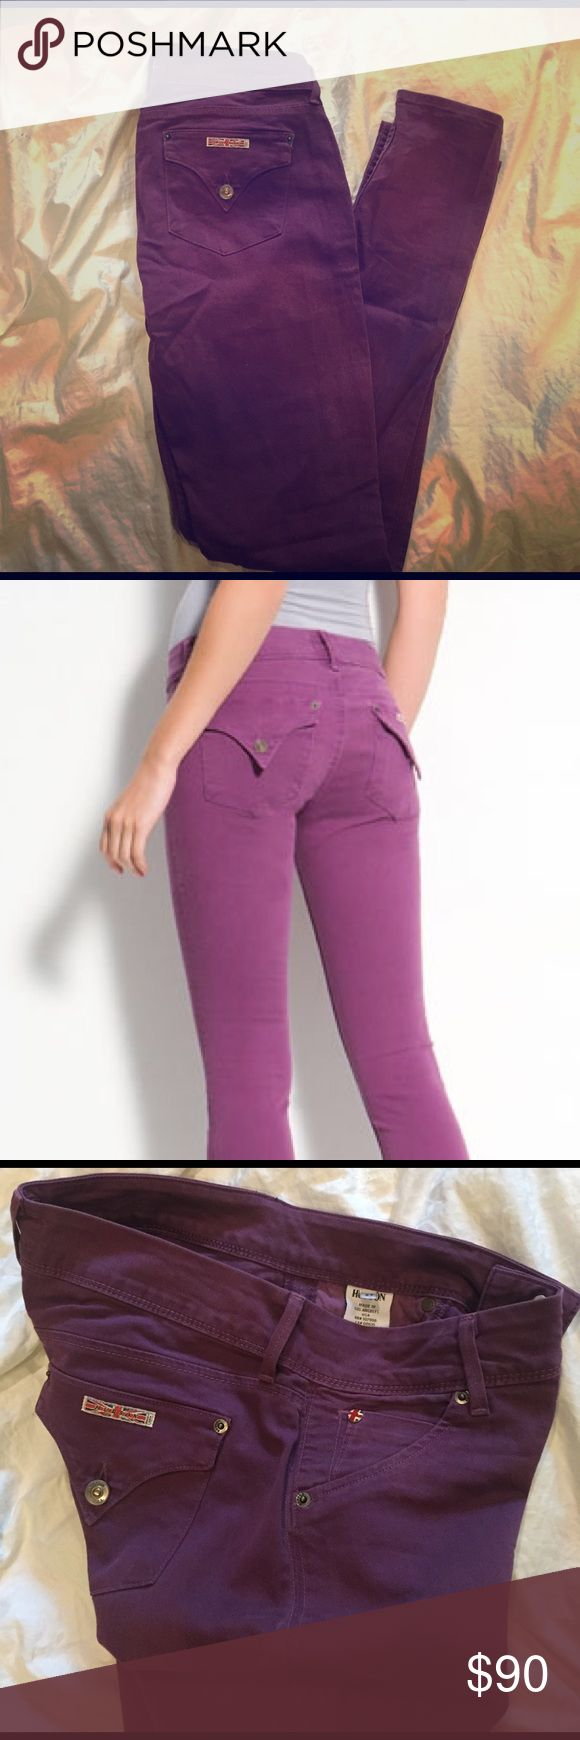 Hudson Skinny Jeans - Purple Purple skinny jeans by Hudson featuring button down back pockets and 2 front buttons with a zip closure. Excellent quality, no rips, stains, tears. Hudson Jeans Jeans Skinny